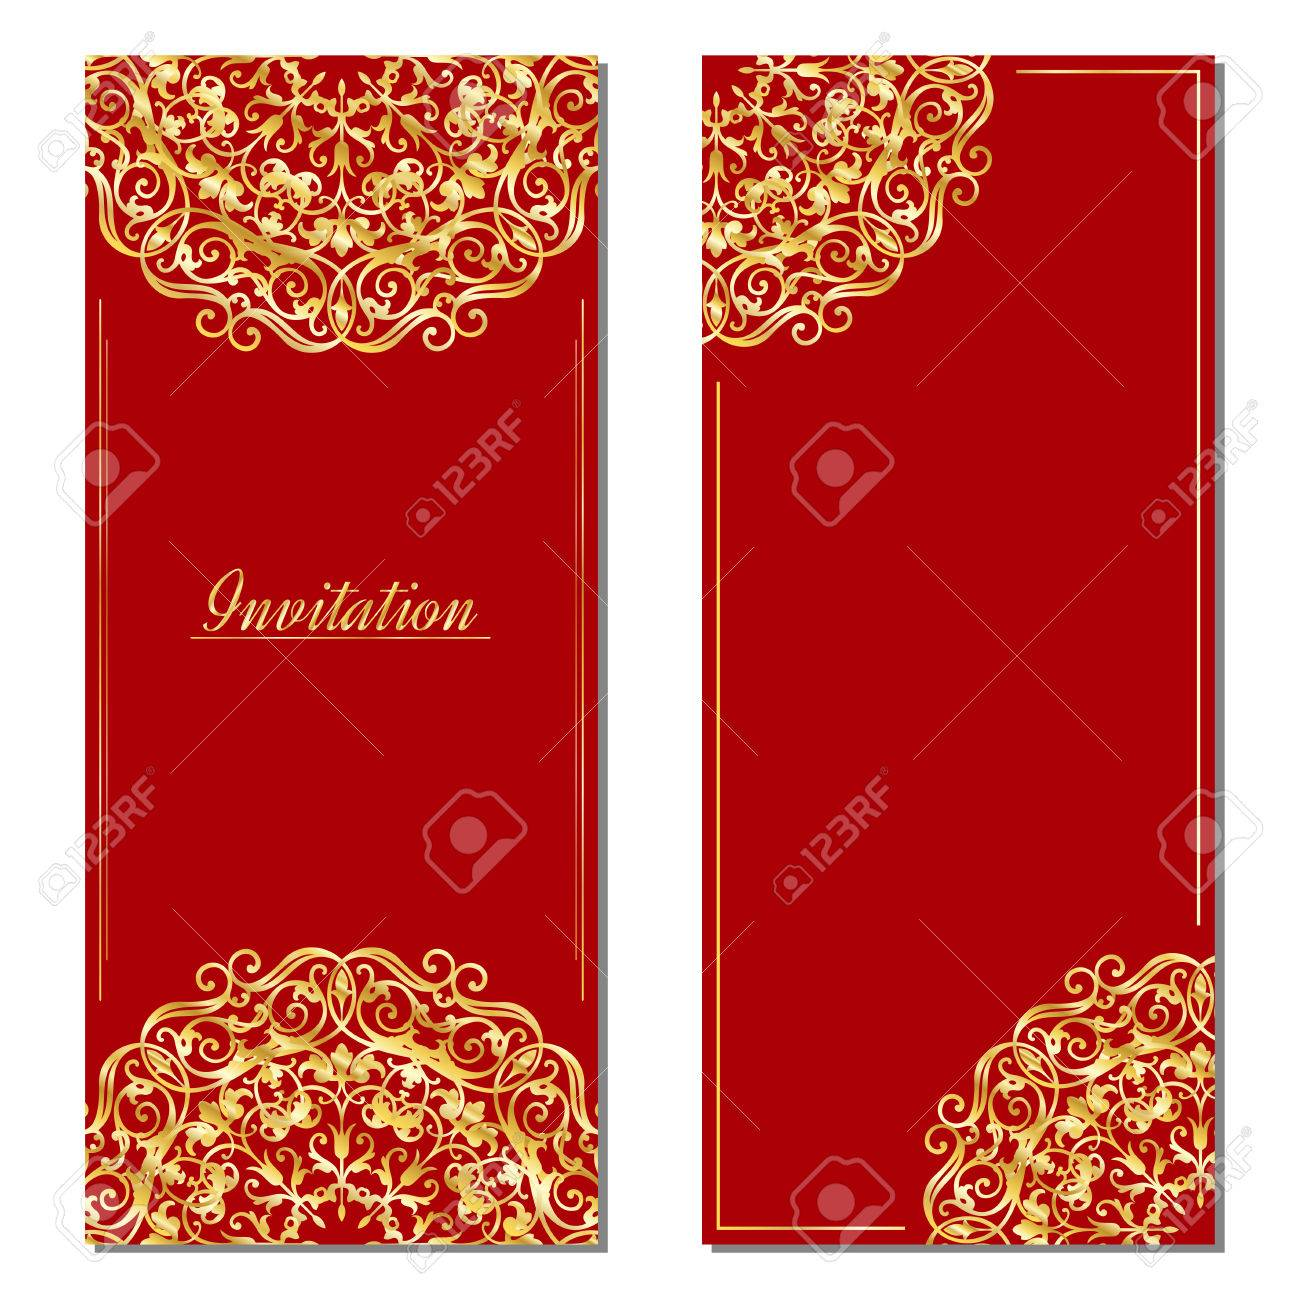 Vintage Greeting Cards In Eastern Style Royalty Free Cliparts